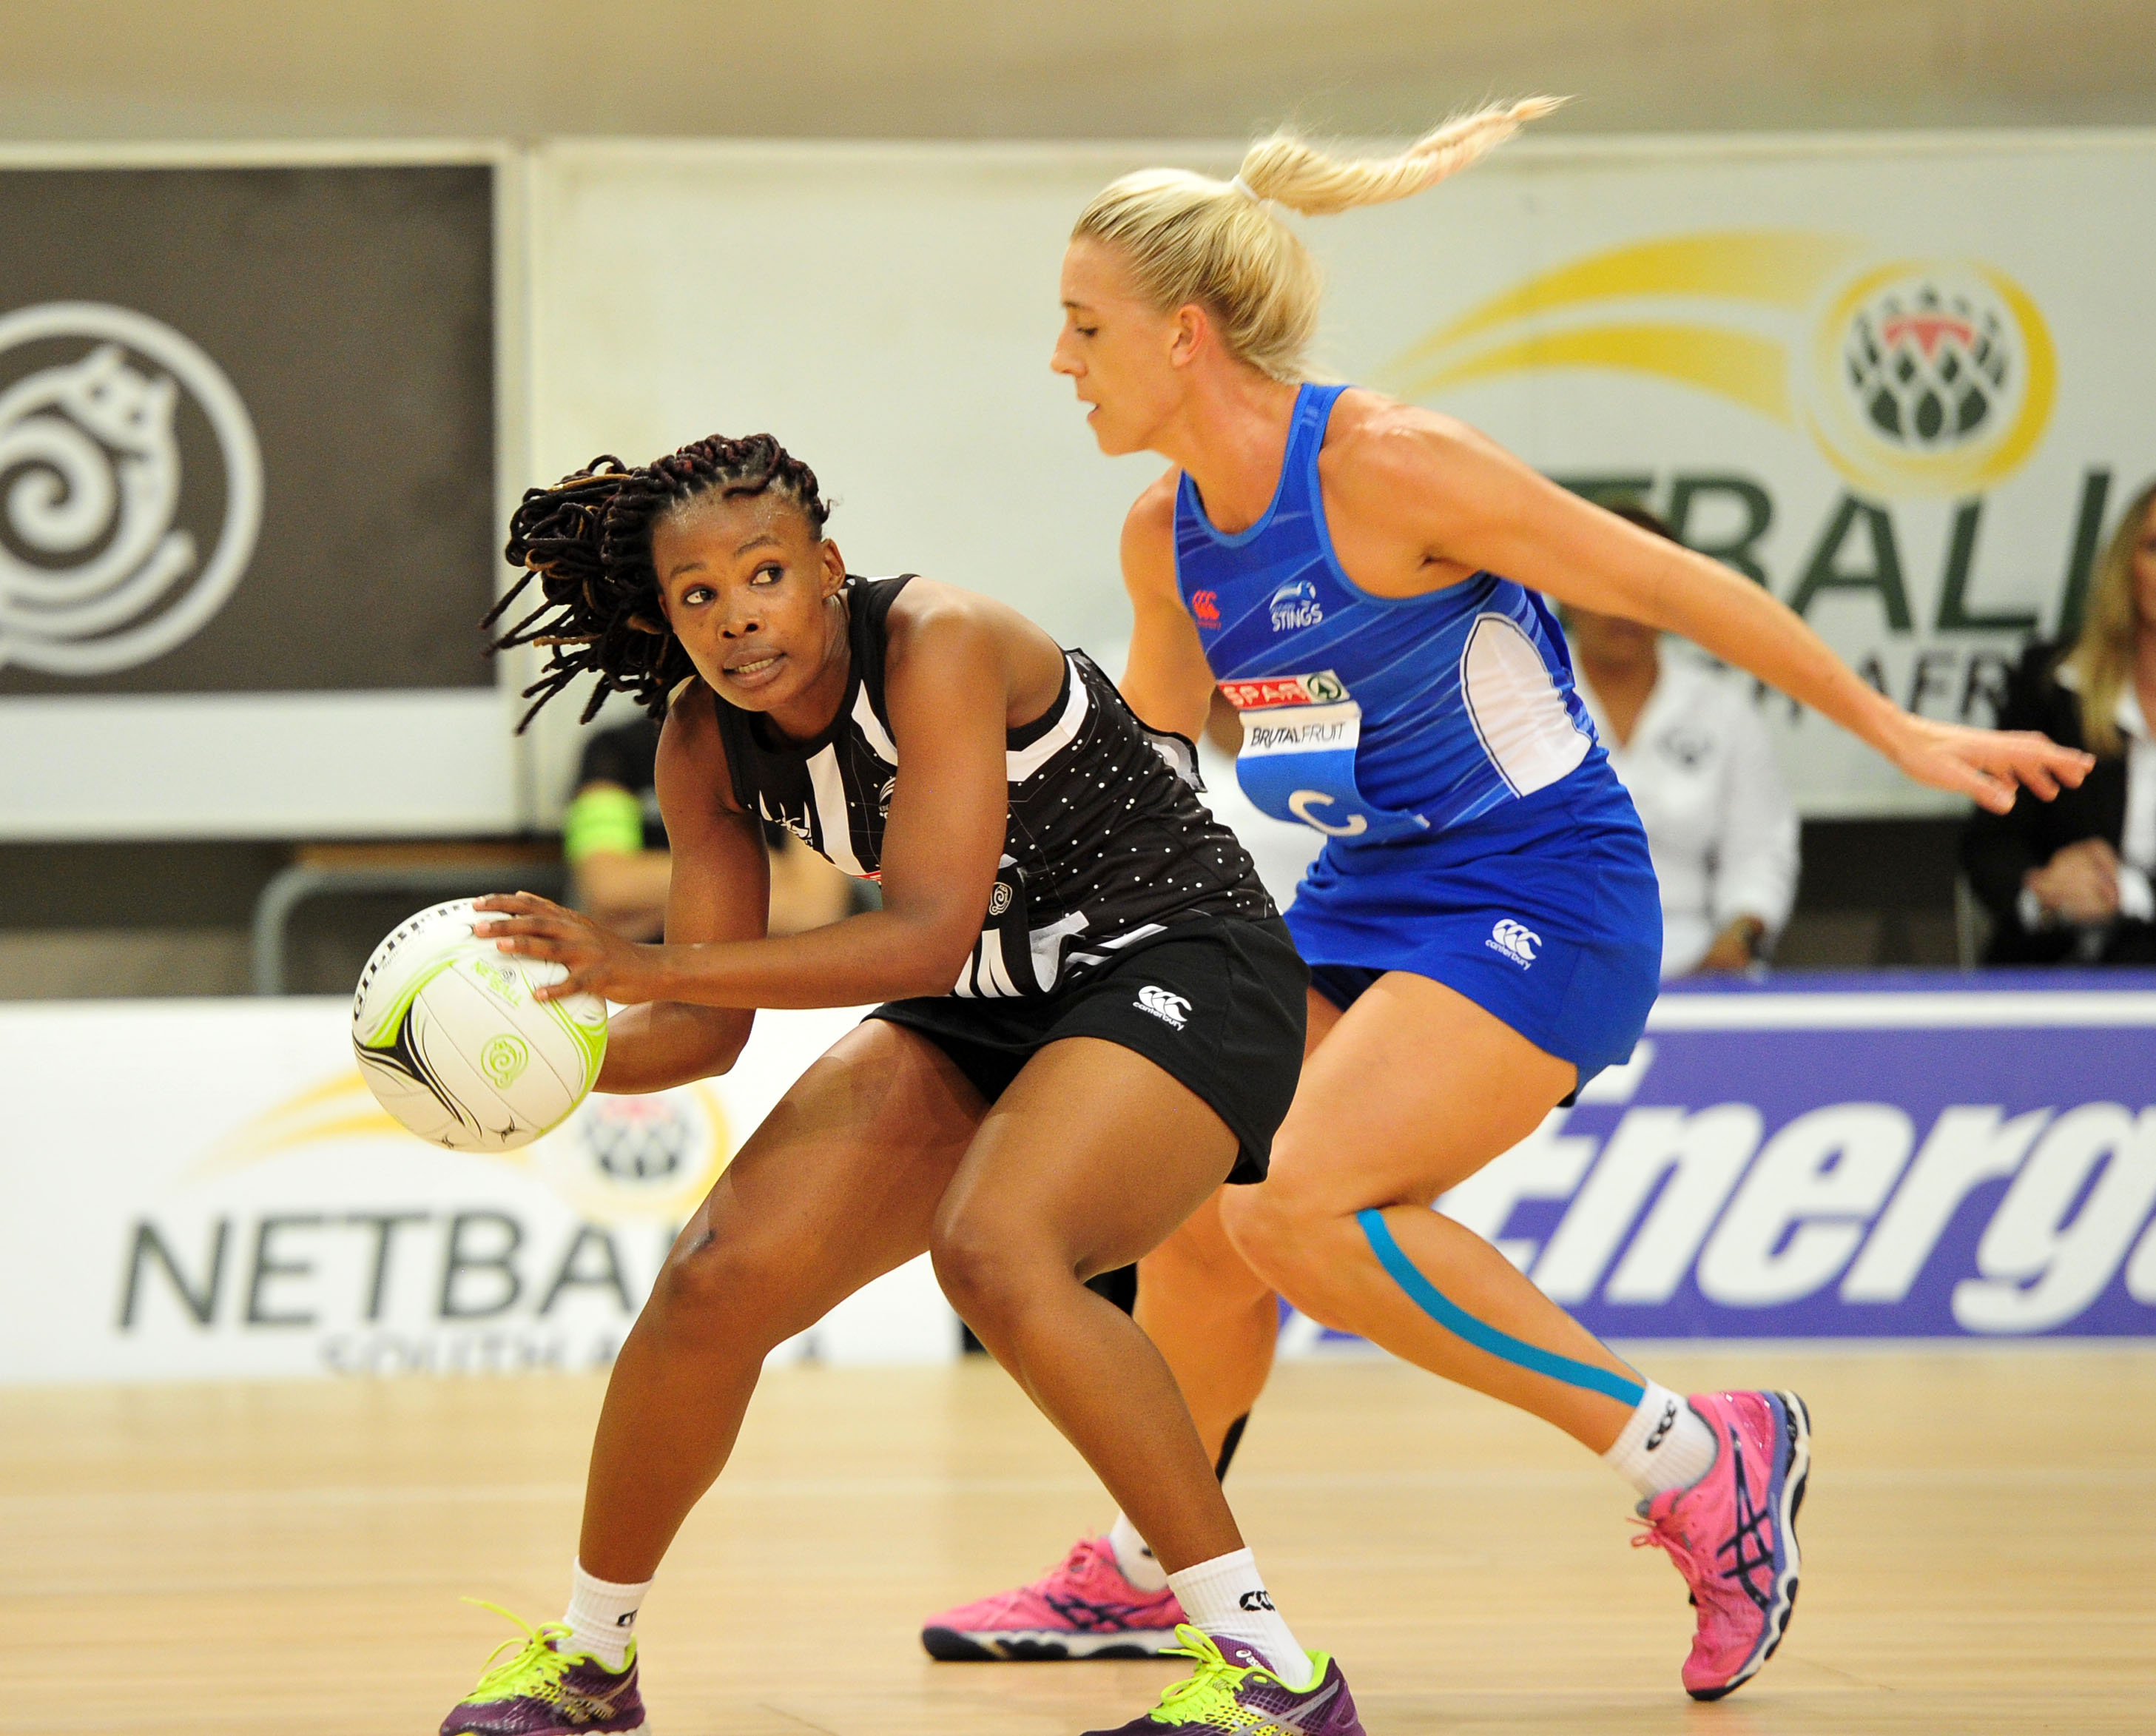 Brutal Fruit Netball League Starts On A High Note photo